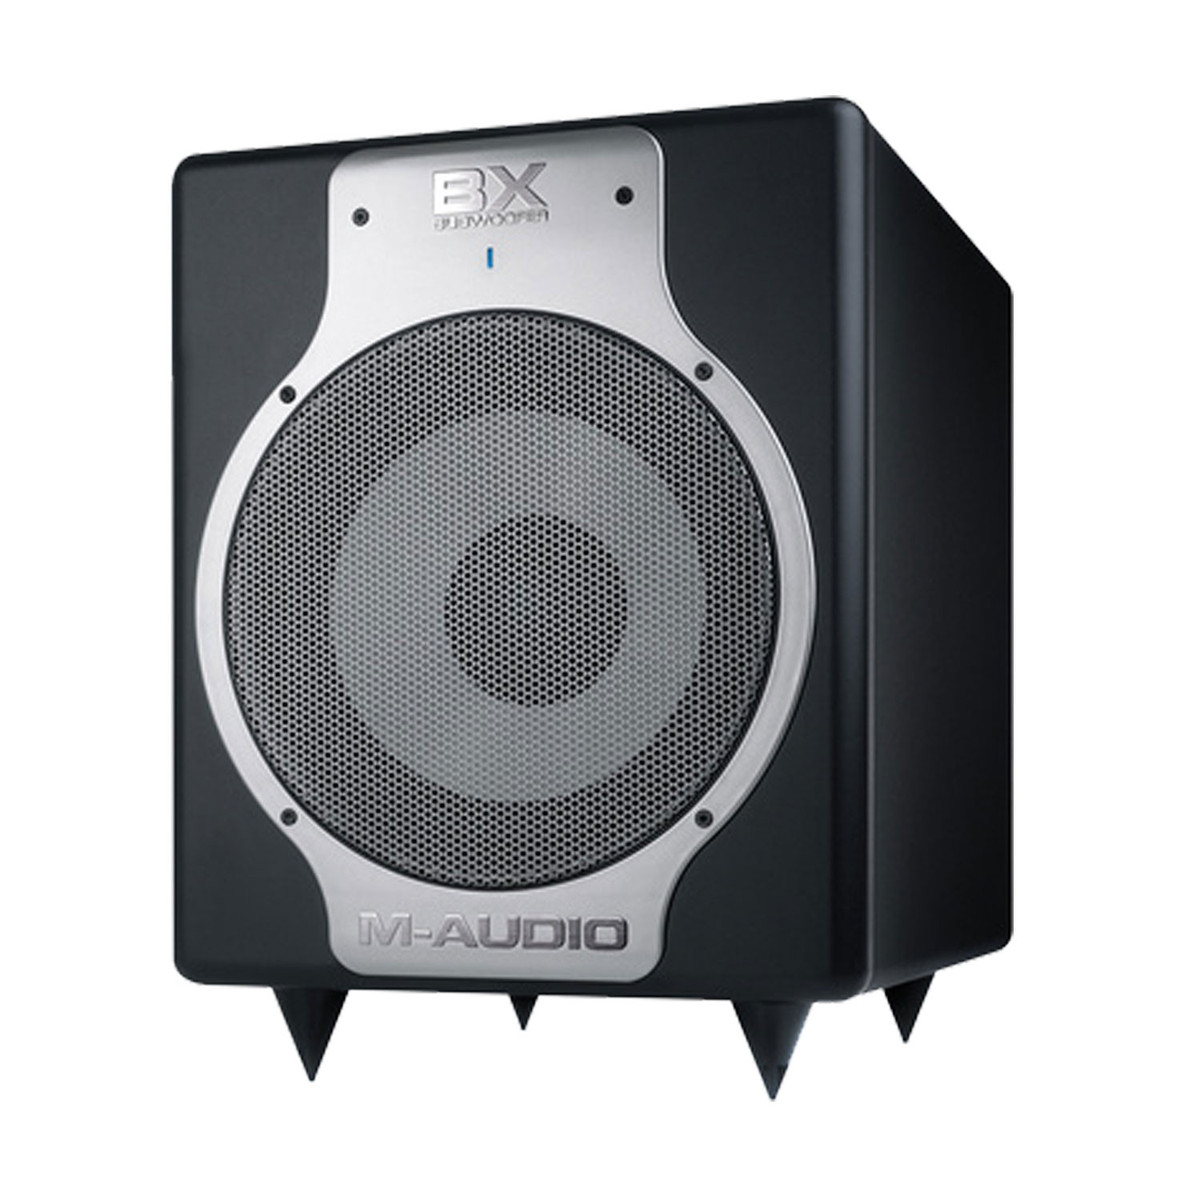 Cheap M-Audio BX Subwoofer 10 Inch Active Sub